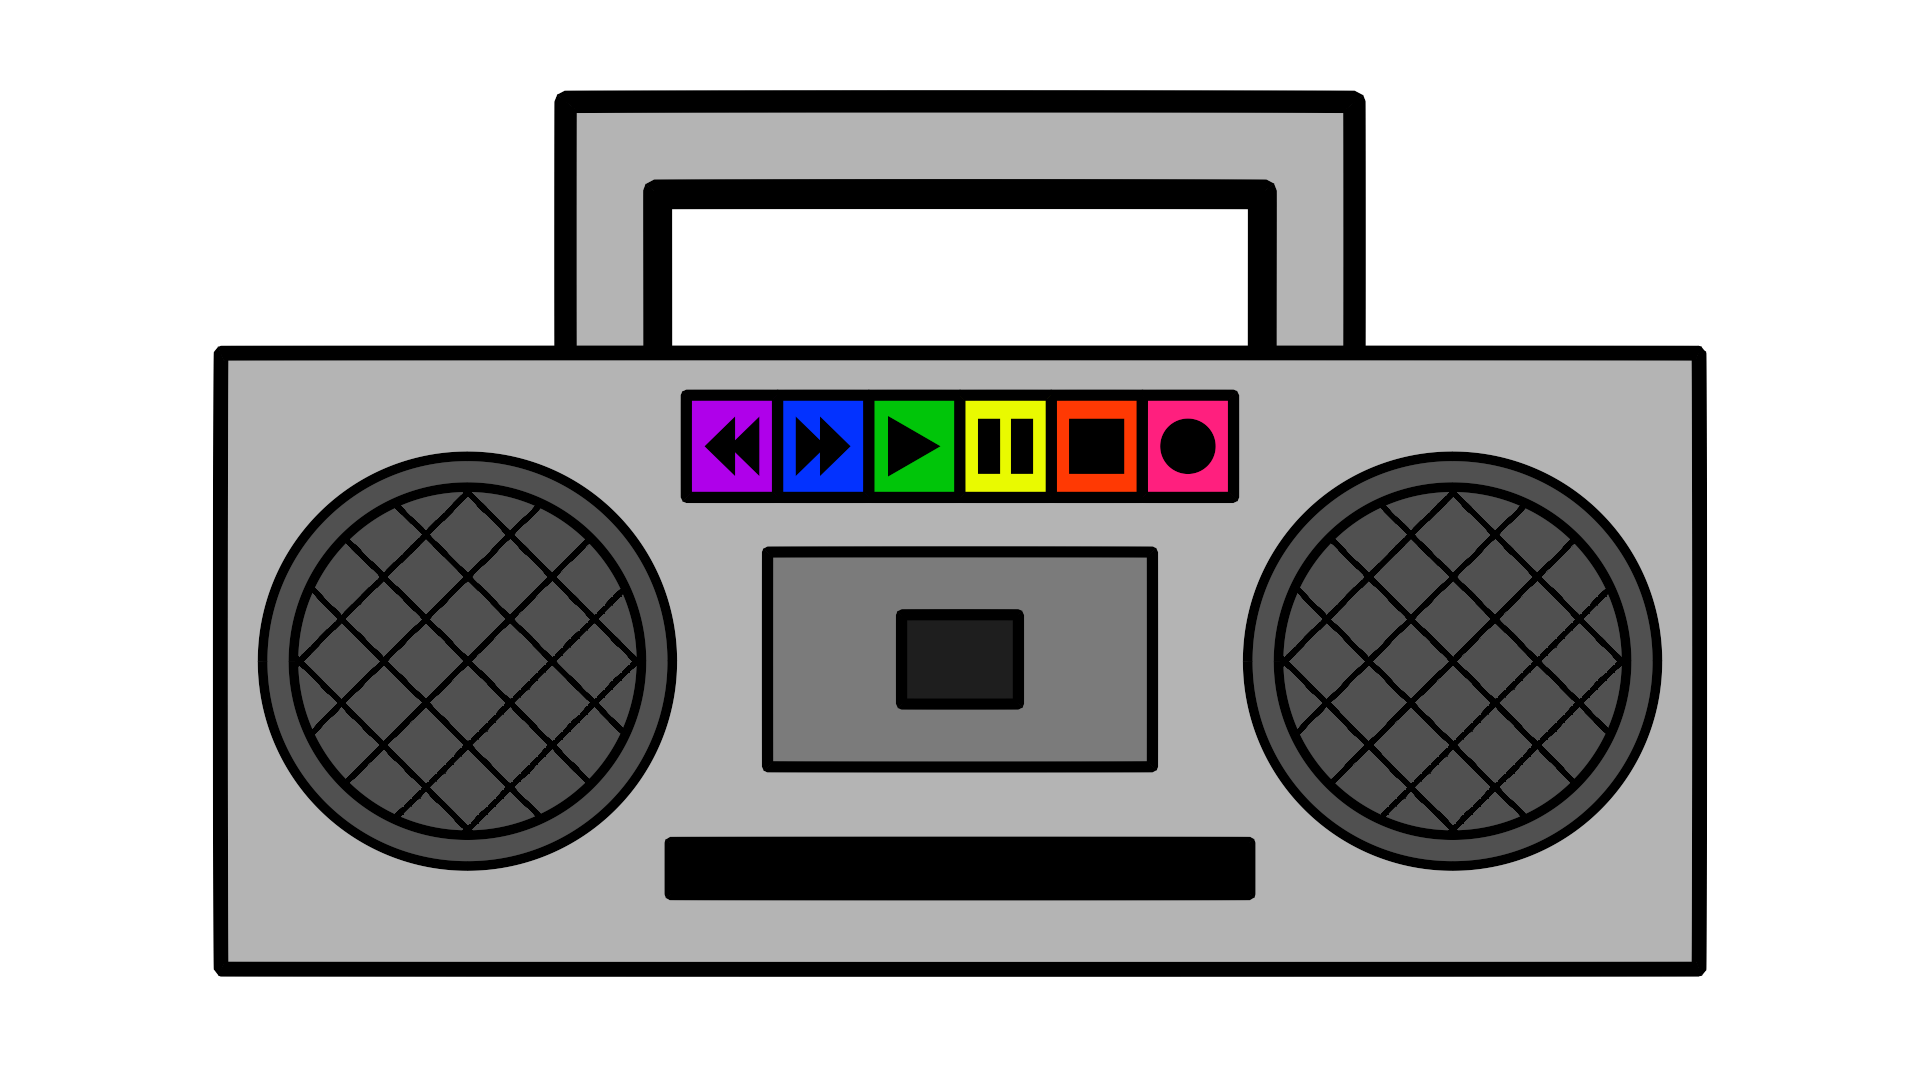 Radio png images. Image idle object shows